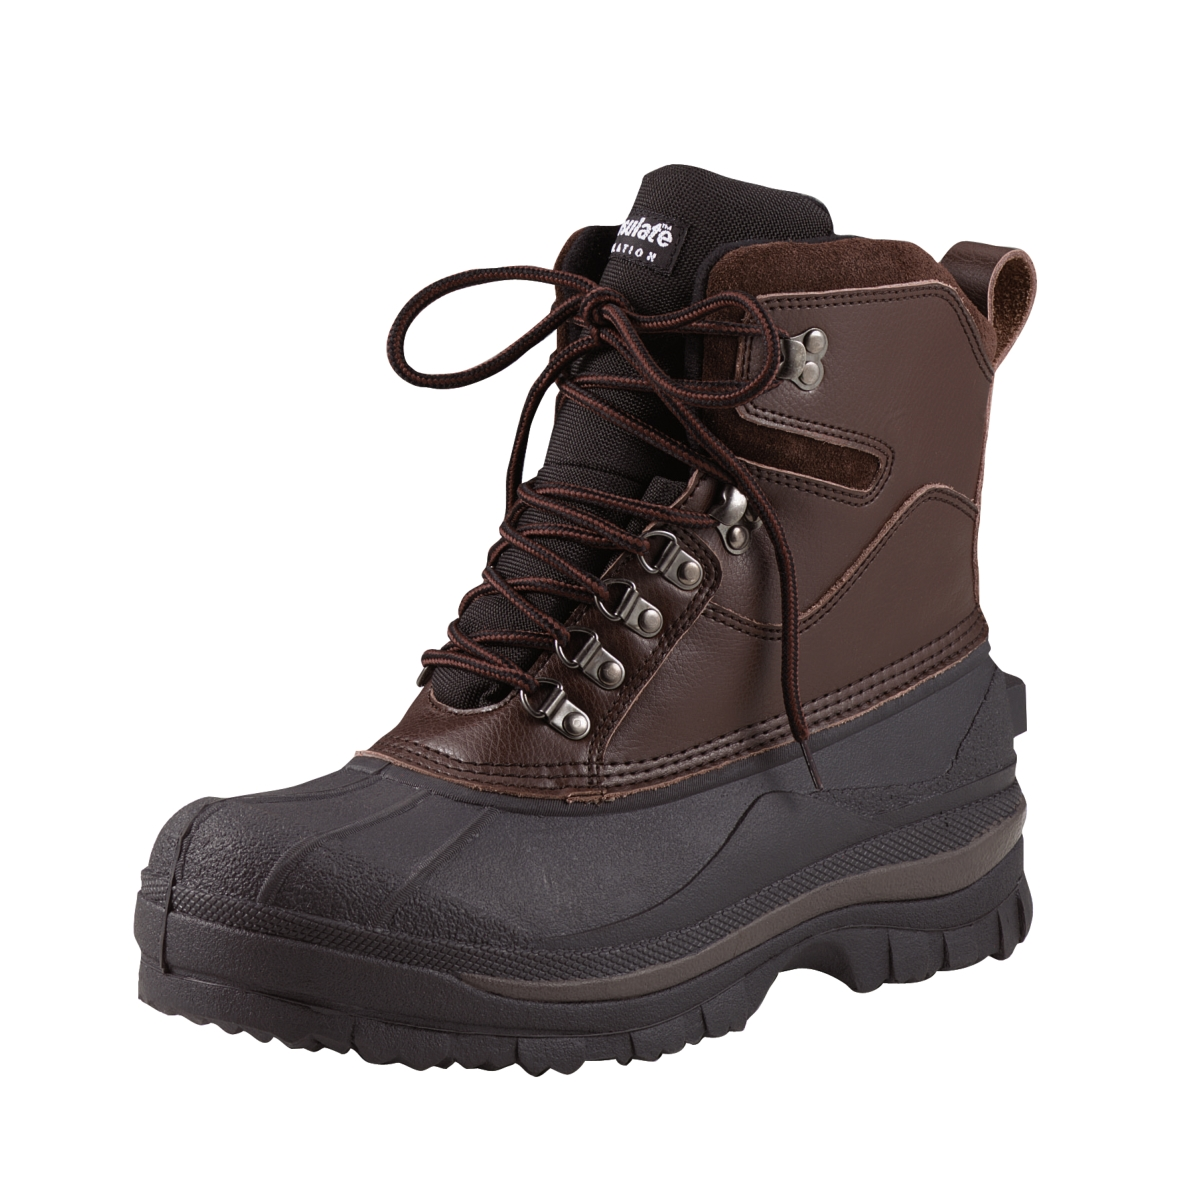 Shop dvlnpxiuf.ga for Work Boots and Work Shoes Including Thorogood Boots, Carolina Boots, Double H Boots, and Much More. Purchase Comfortable, Quality Work Shoes & Work Boots Today At Midwest Boots. Check Out Our Large American Made Boot and Shoe Collection.